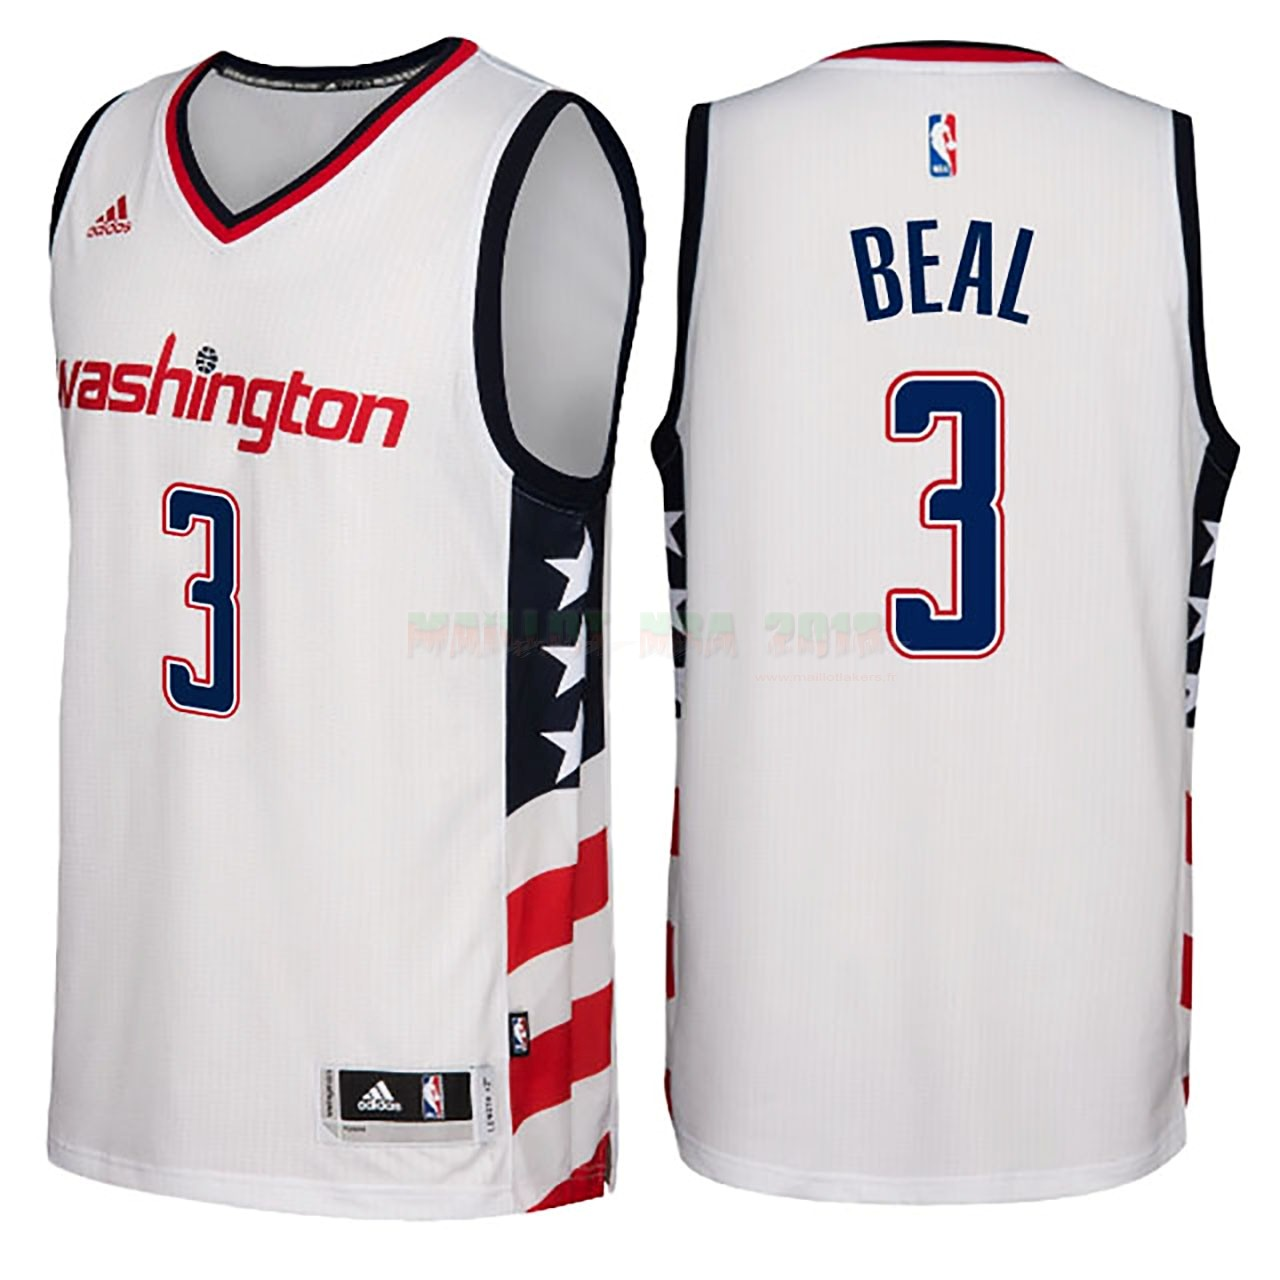 Maillot NBA Washington Wizards NO.3 Bradley Beal Blanc Hardwood Classics 2016-17